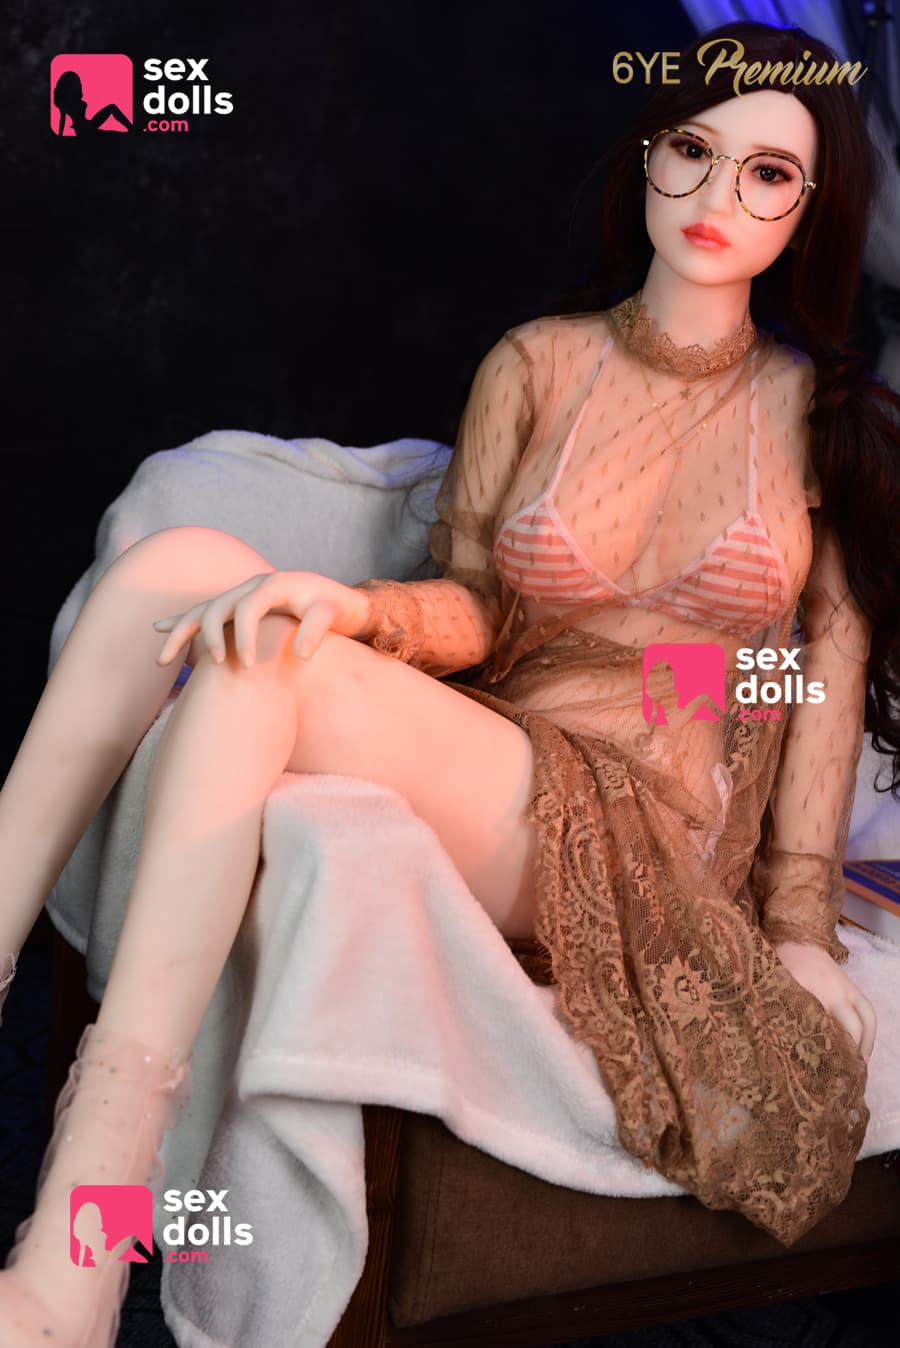 olivia 160cm black hair japanese medium tits skinny tpe sex doll(6)